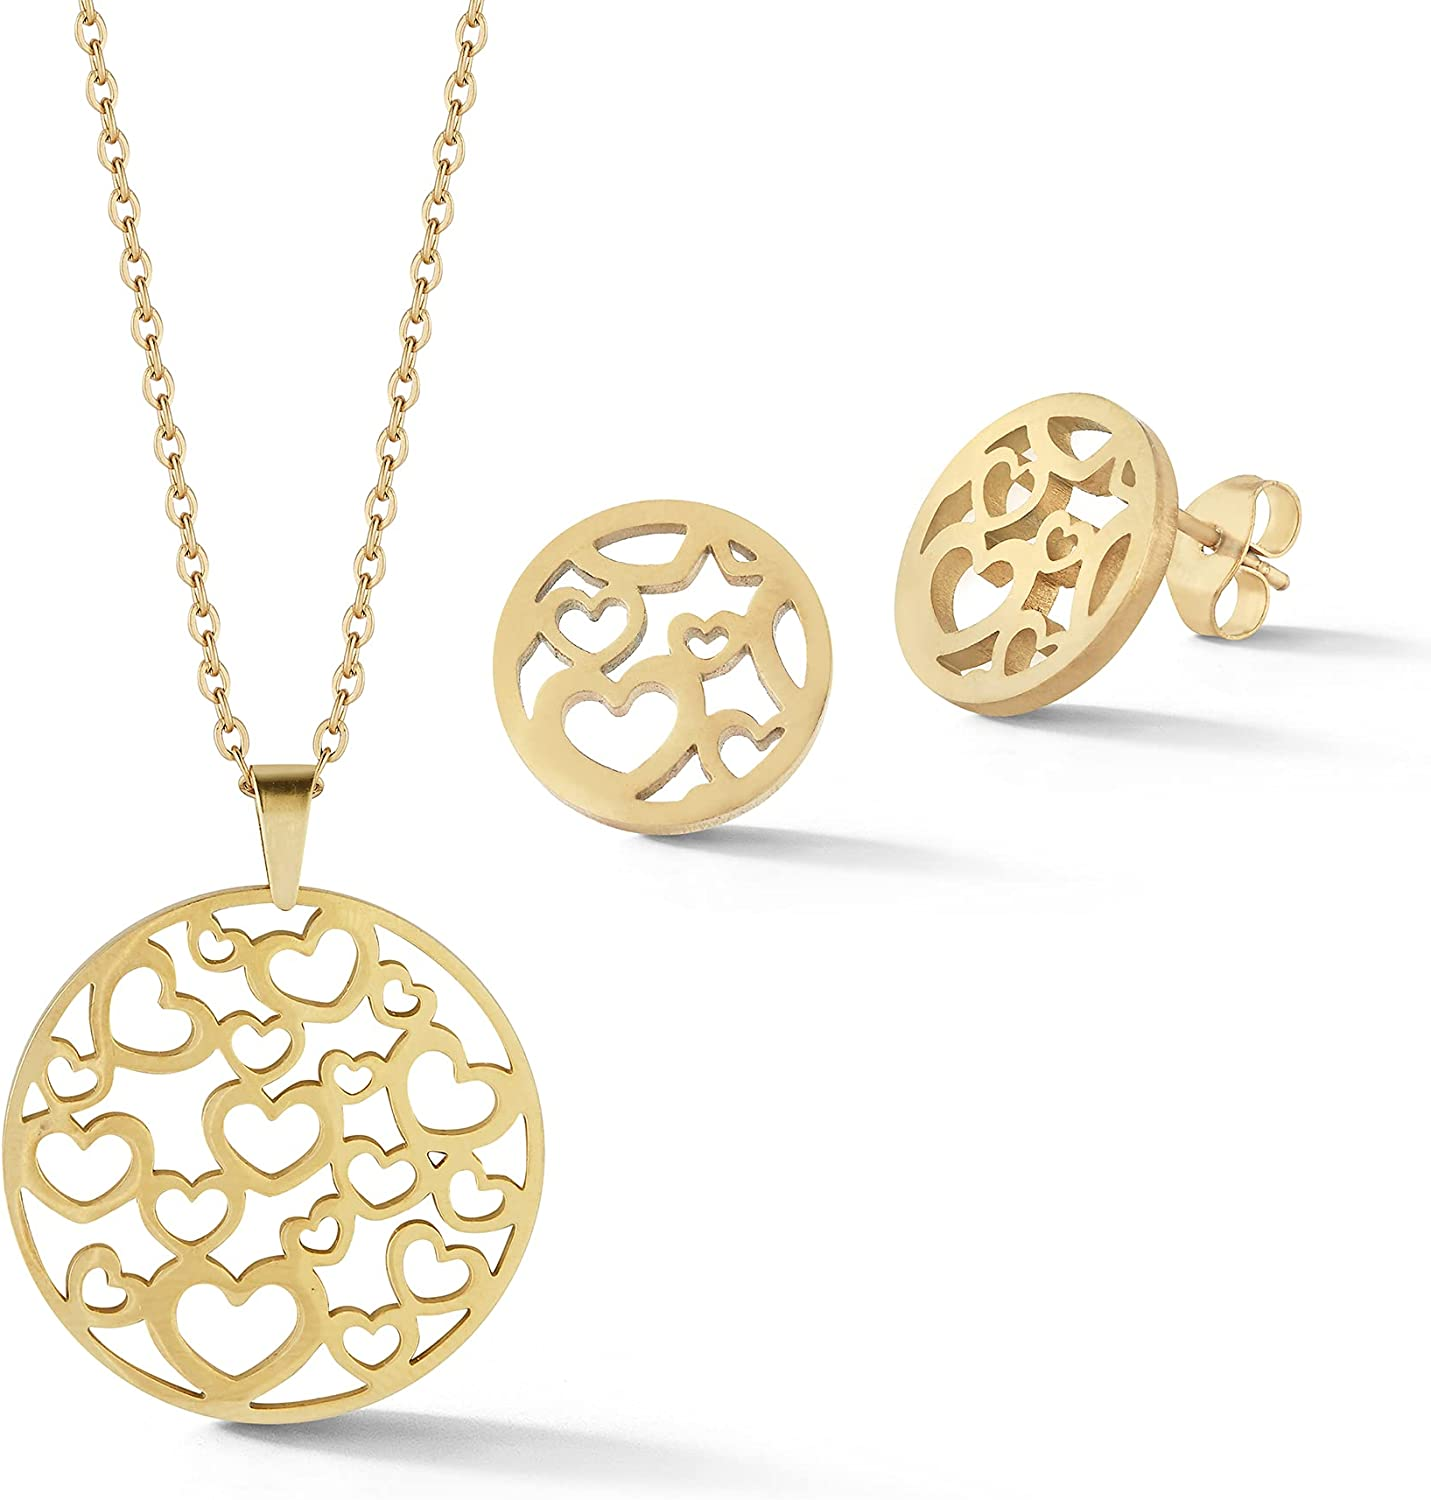 18k Plated Gold Jewelry Set for a Timeless Look - Versatile Heart Jewelry for Women to Accent Any Outfit - Quality Earring and Necklace Set for Women - Heart Necklace Jewelry for Women